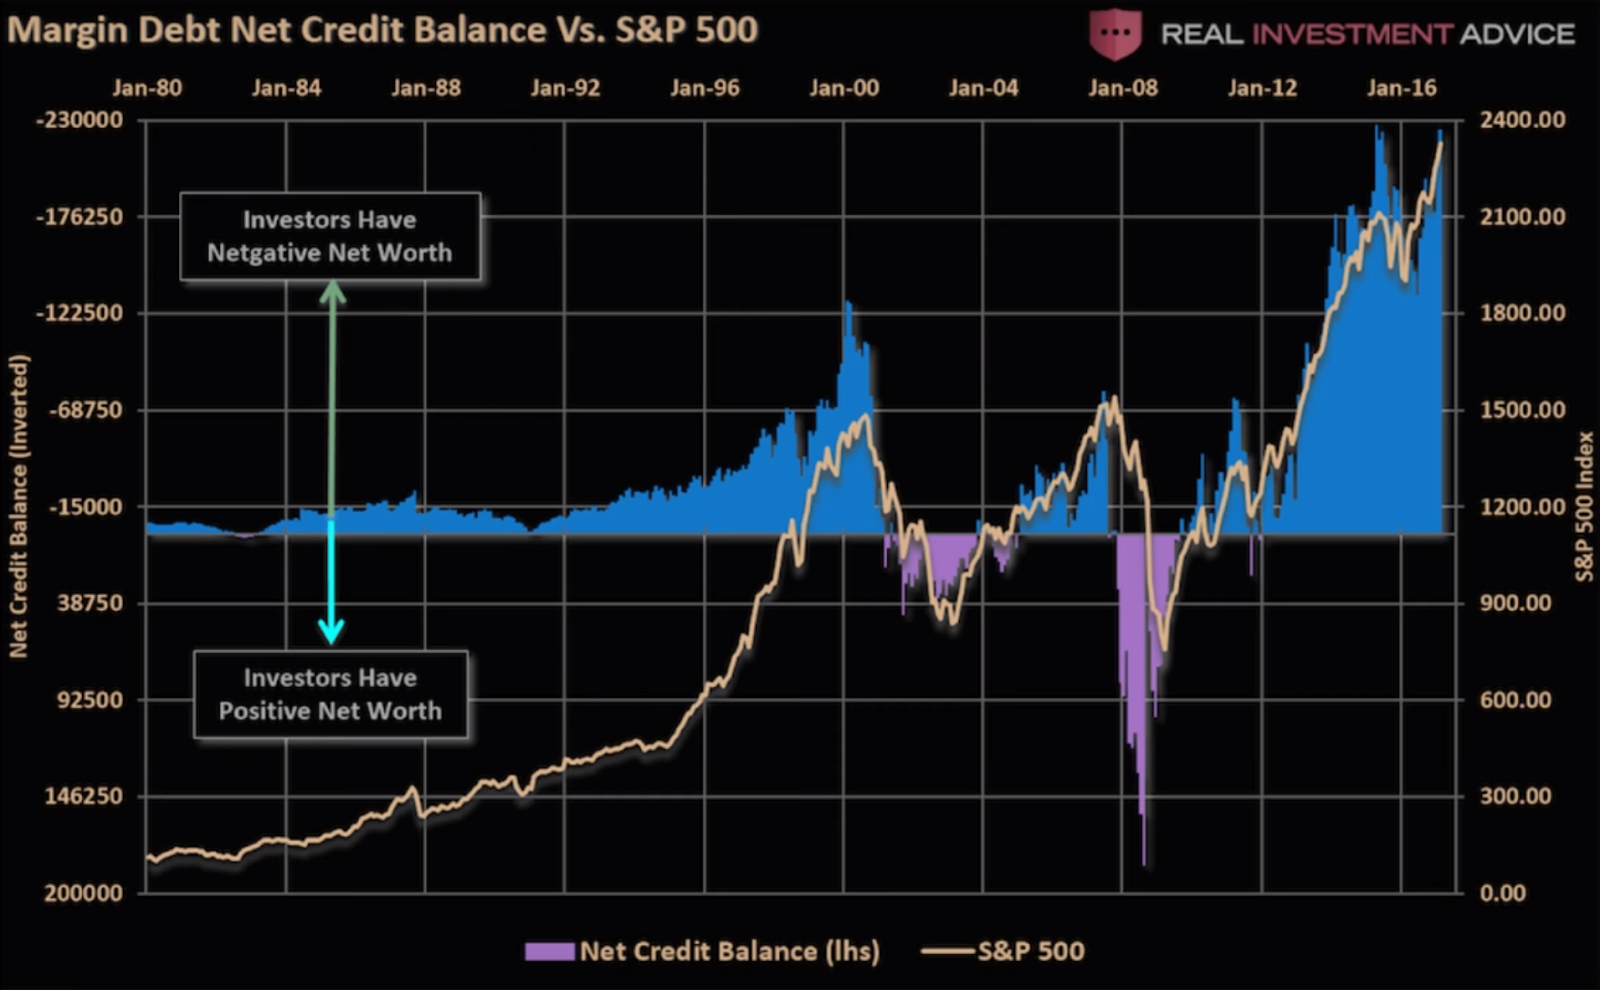 Margin Debt Net Credit Balance vs S&P 500